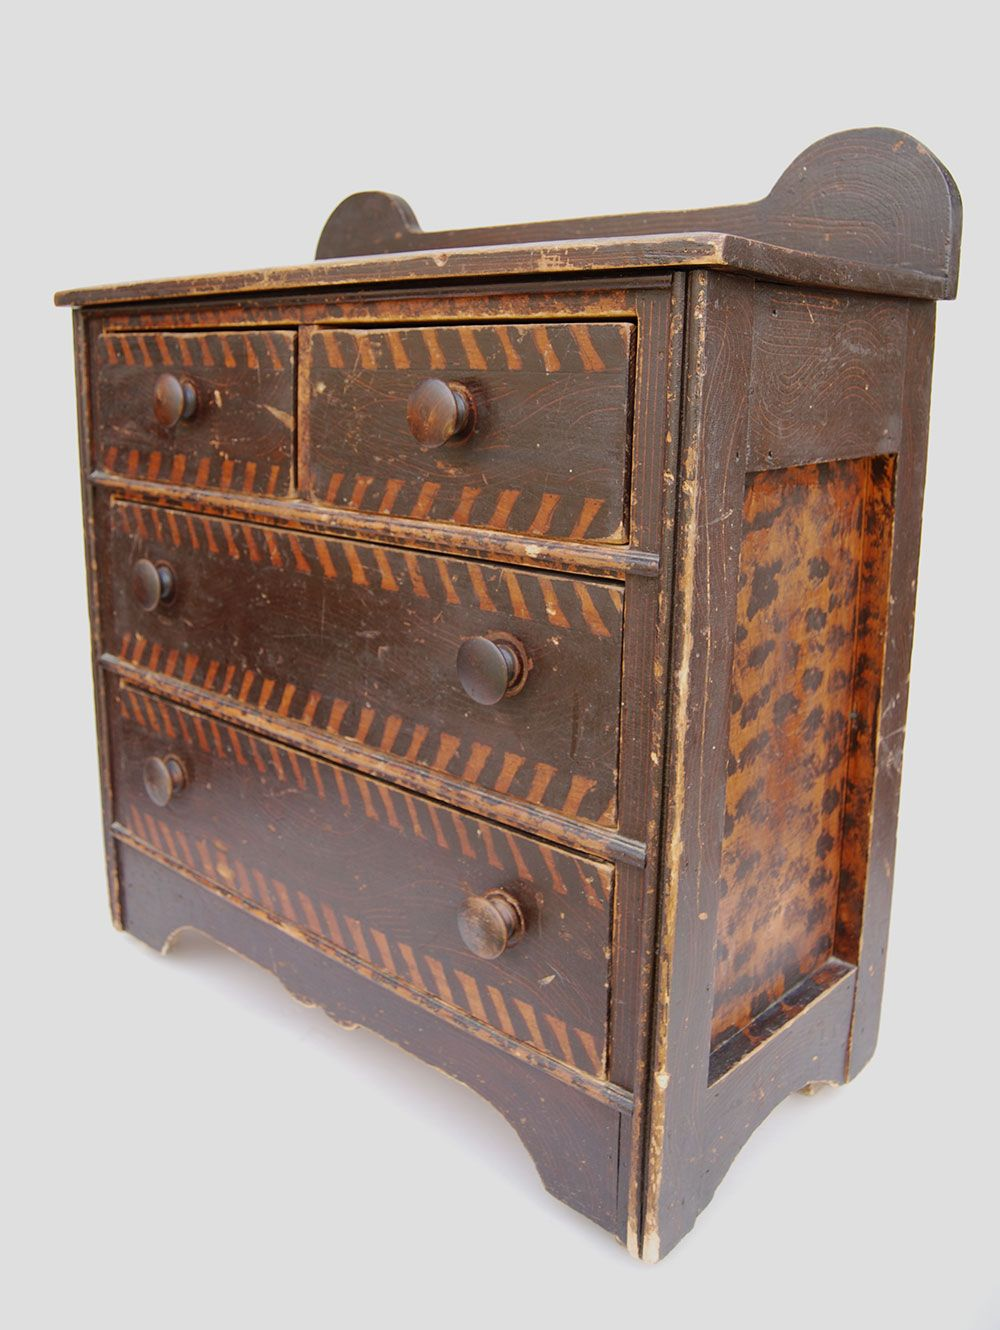 19th Century Folk Art Paint Decorated Childs Chest | New England Antique  American Furniture - 19th Century Folk Art Paint Decorated Childs Chest New England